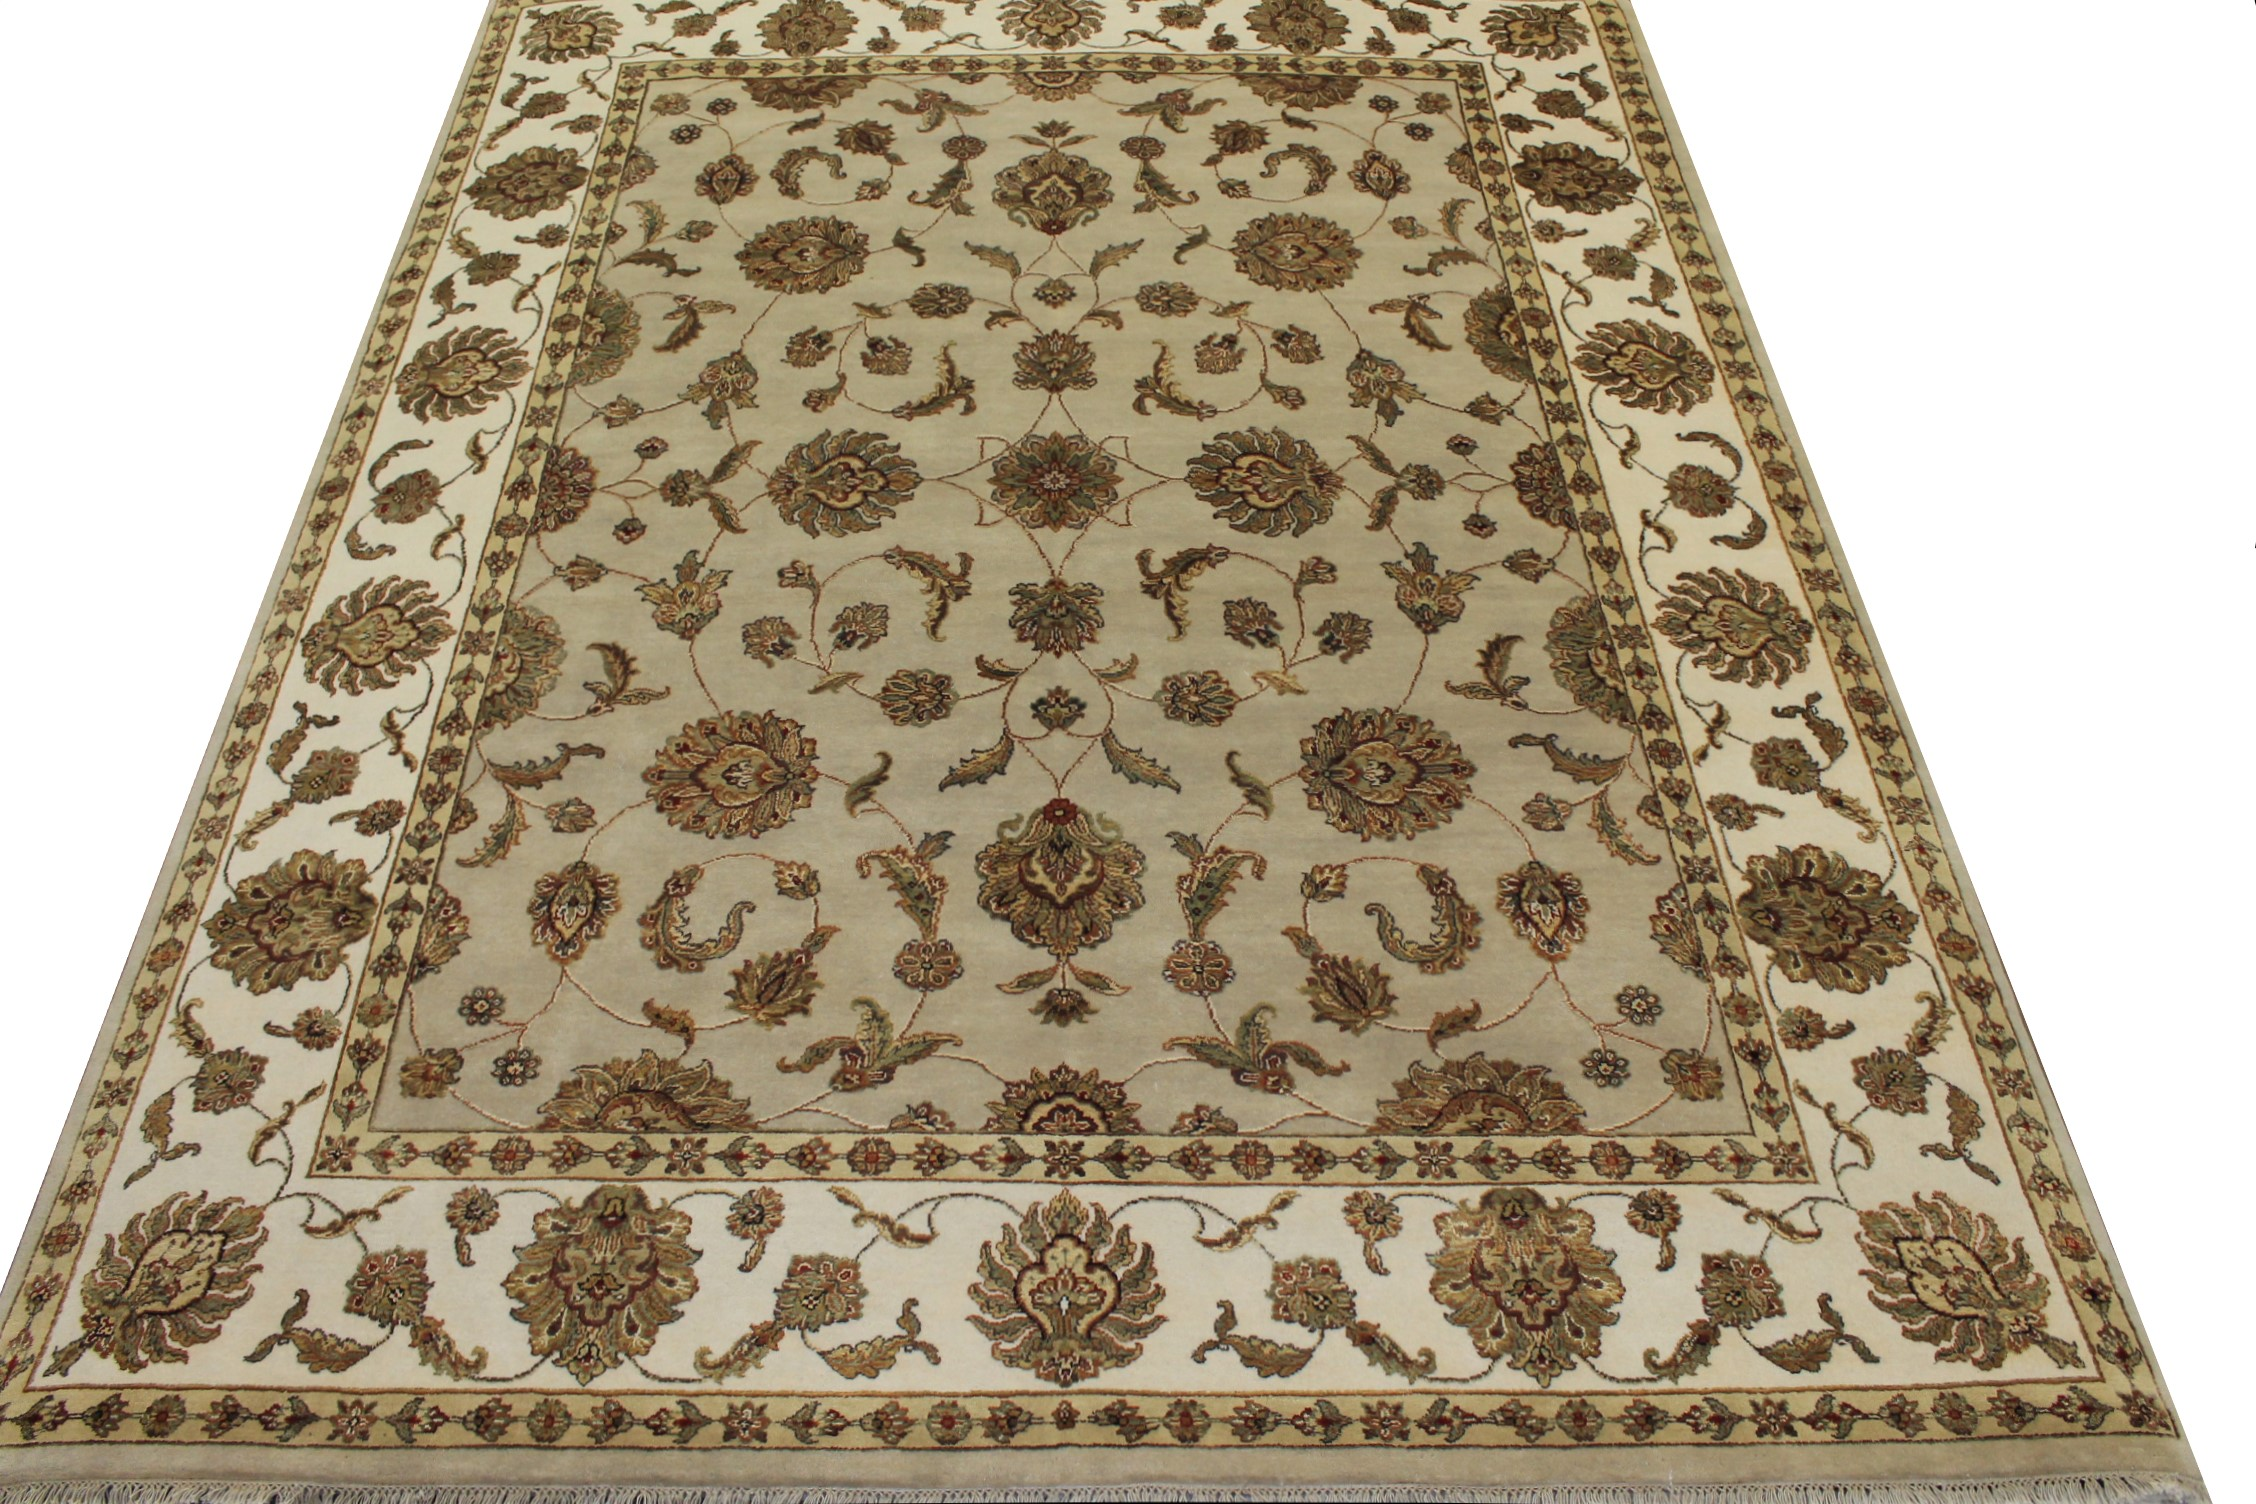 8x10 Silk Flower Hand Knotted Wool Area Rug - MR16014